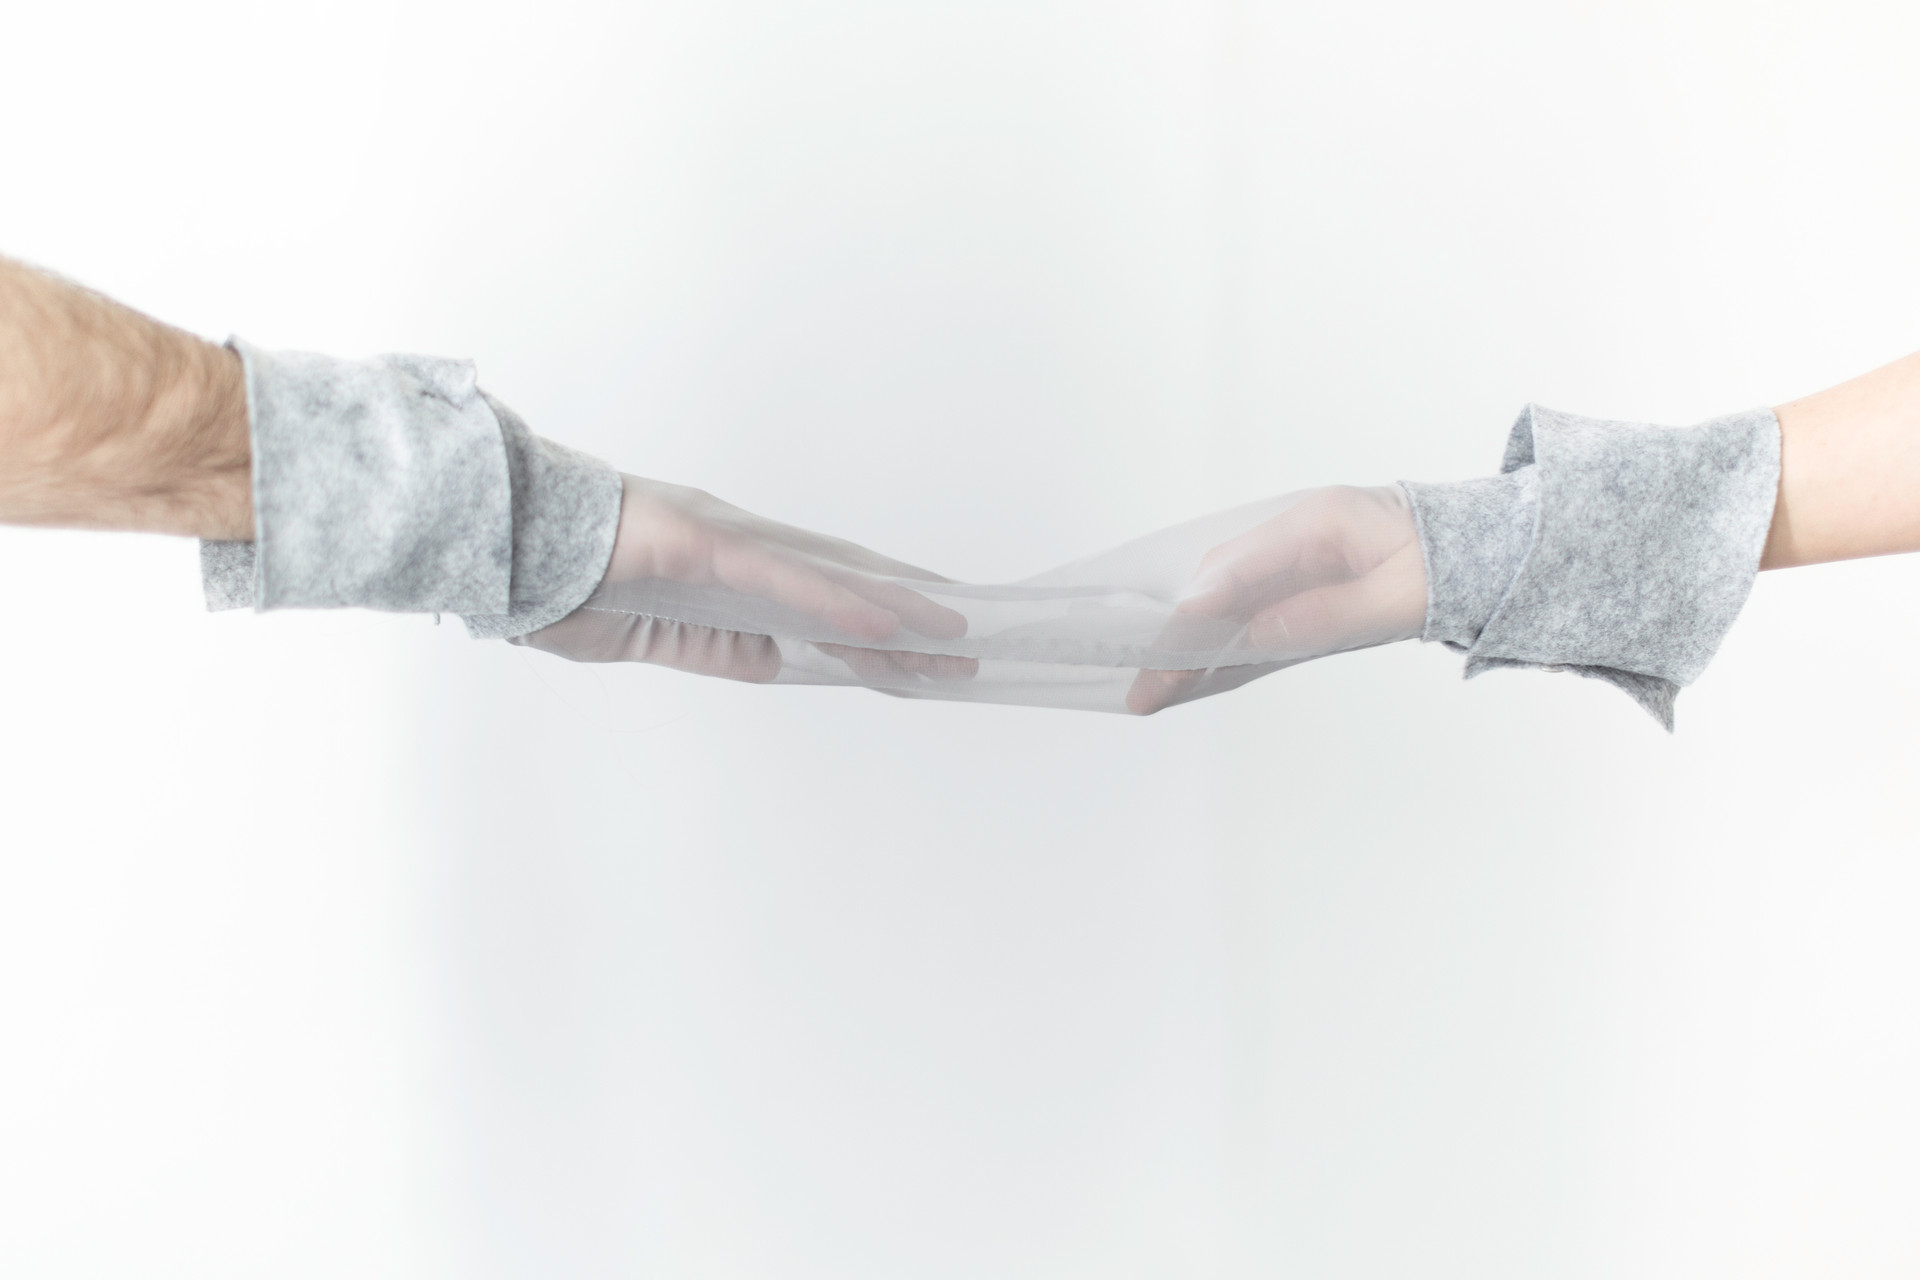 UNTITLED (TOOLS FOR HANDHOLDING)